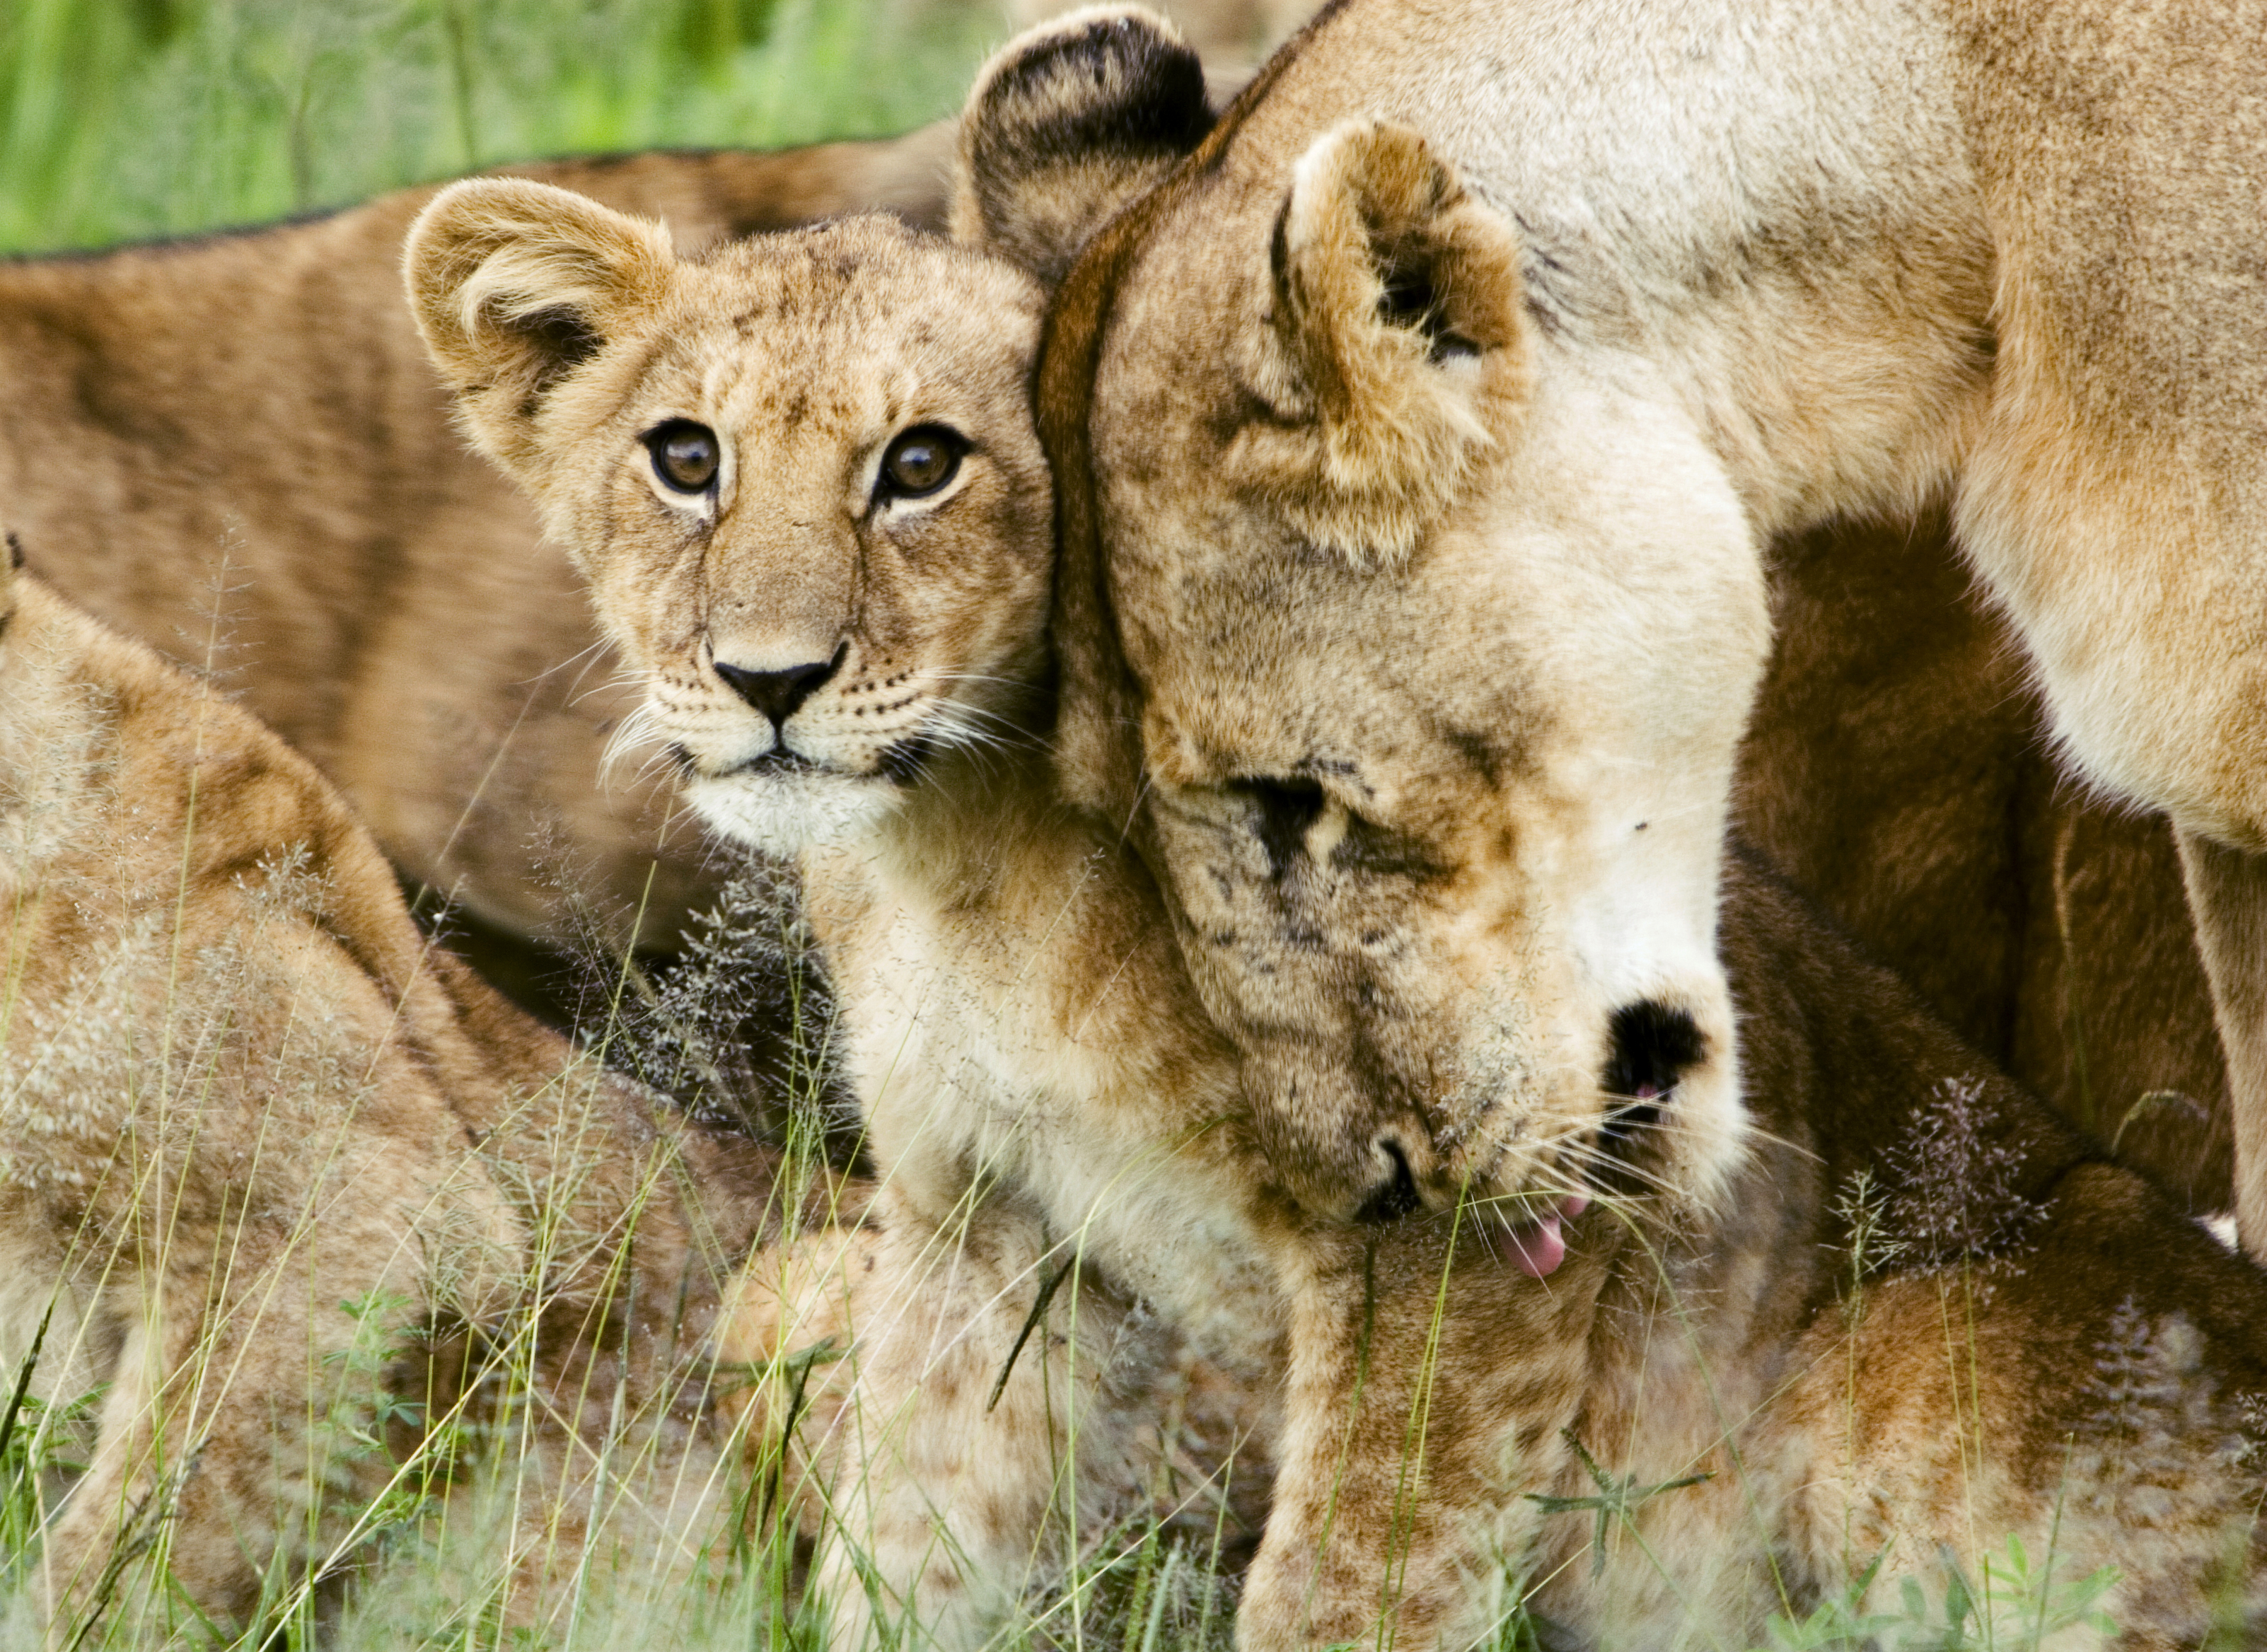 http://upload.wikimedia.org/wikipedia/commons/e/ec/Lion_cub_with_mother.jpg